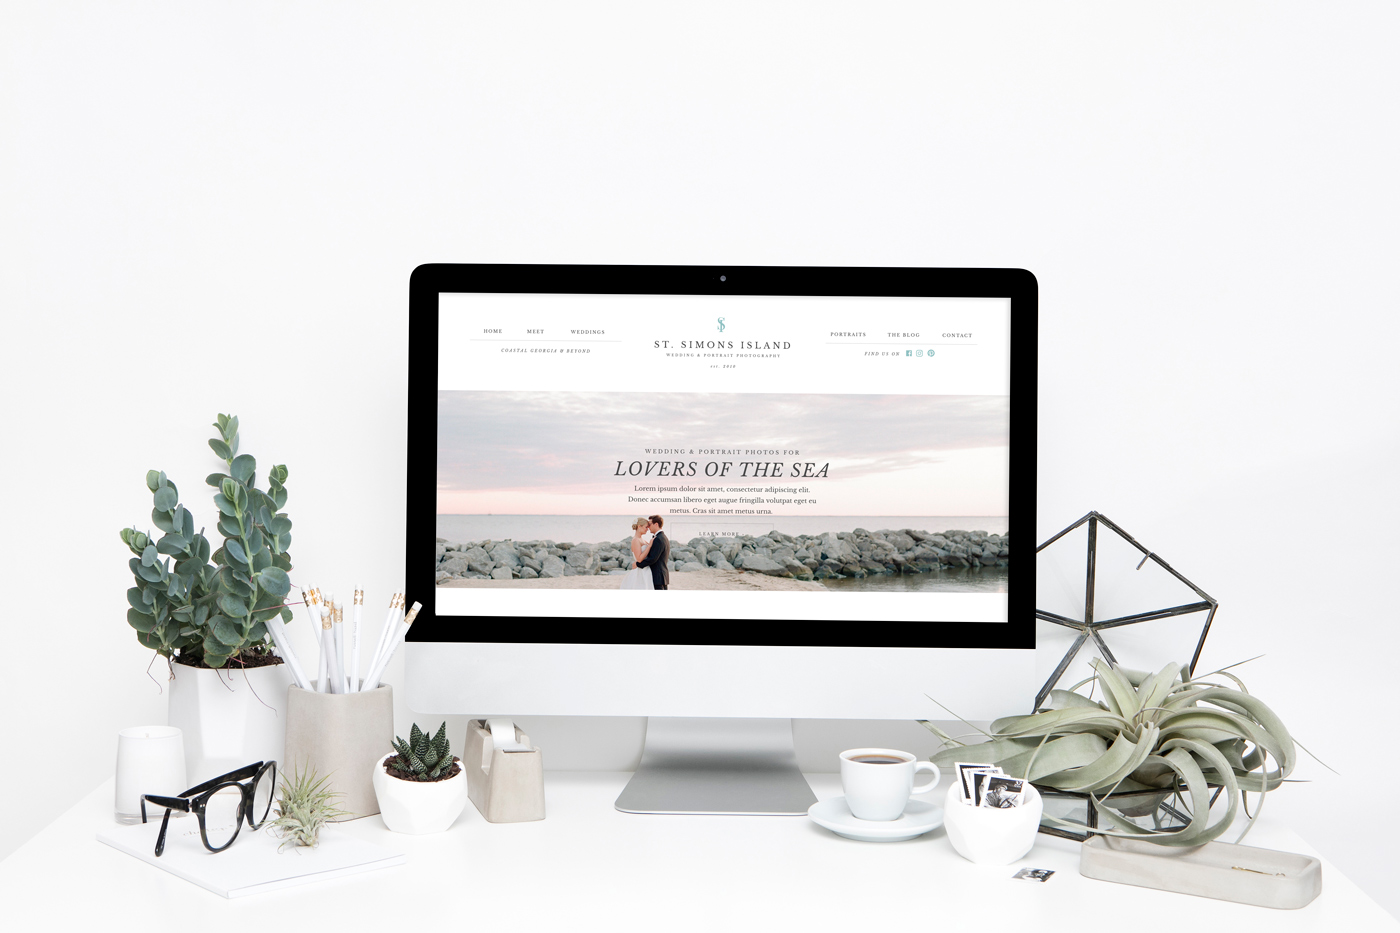 Elegant, classic drag and drop WordPress & Showit website templates for photographers and creative business owners. | Davey & Krista